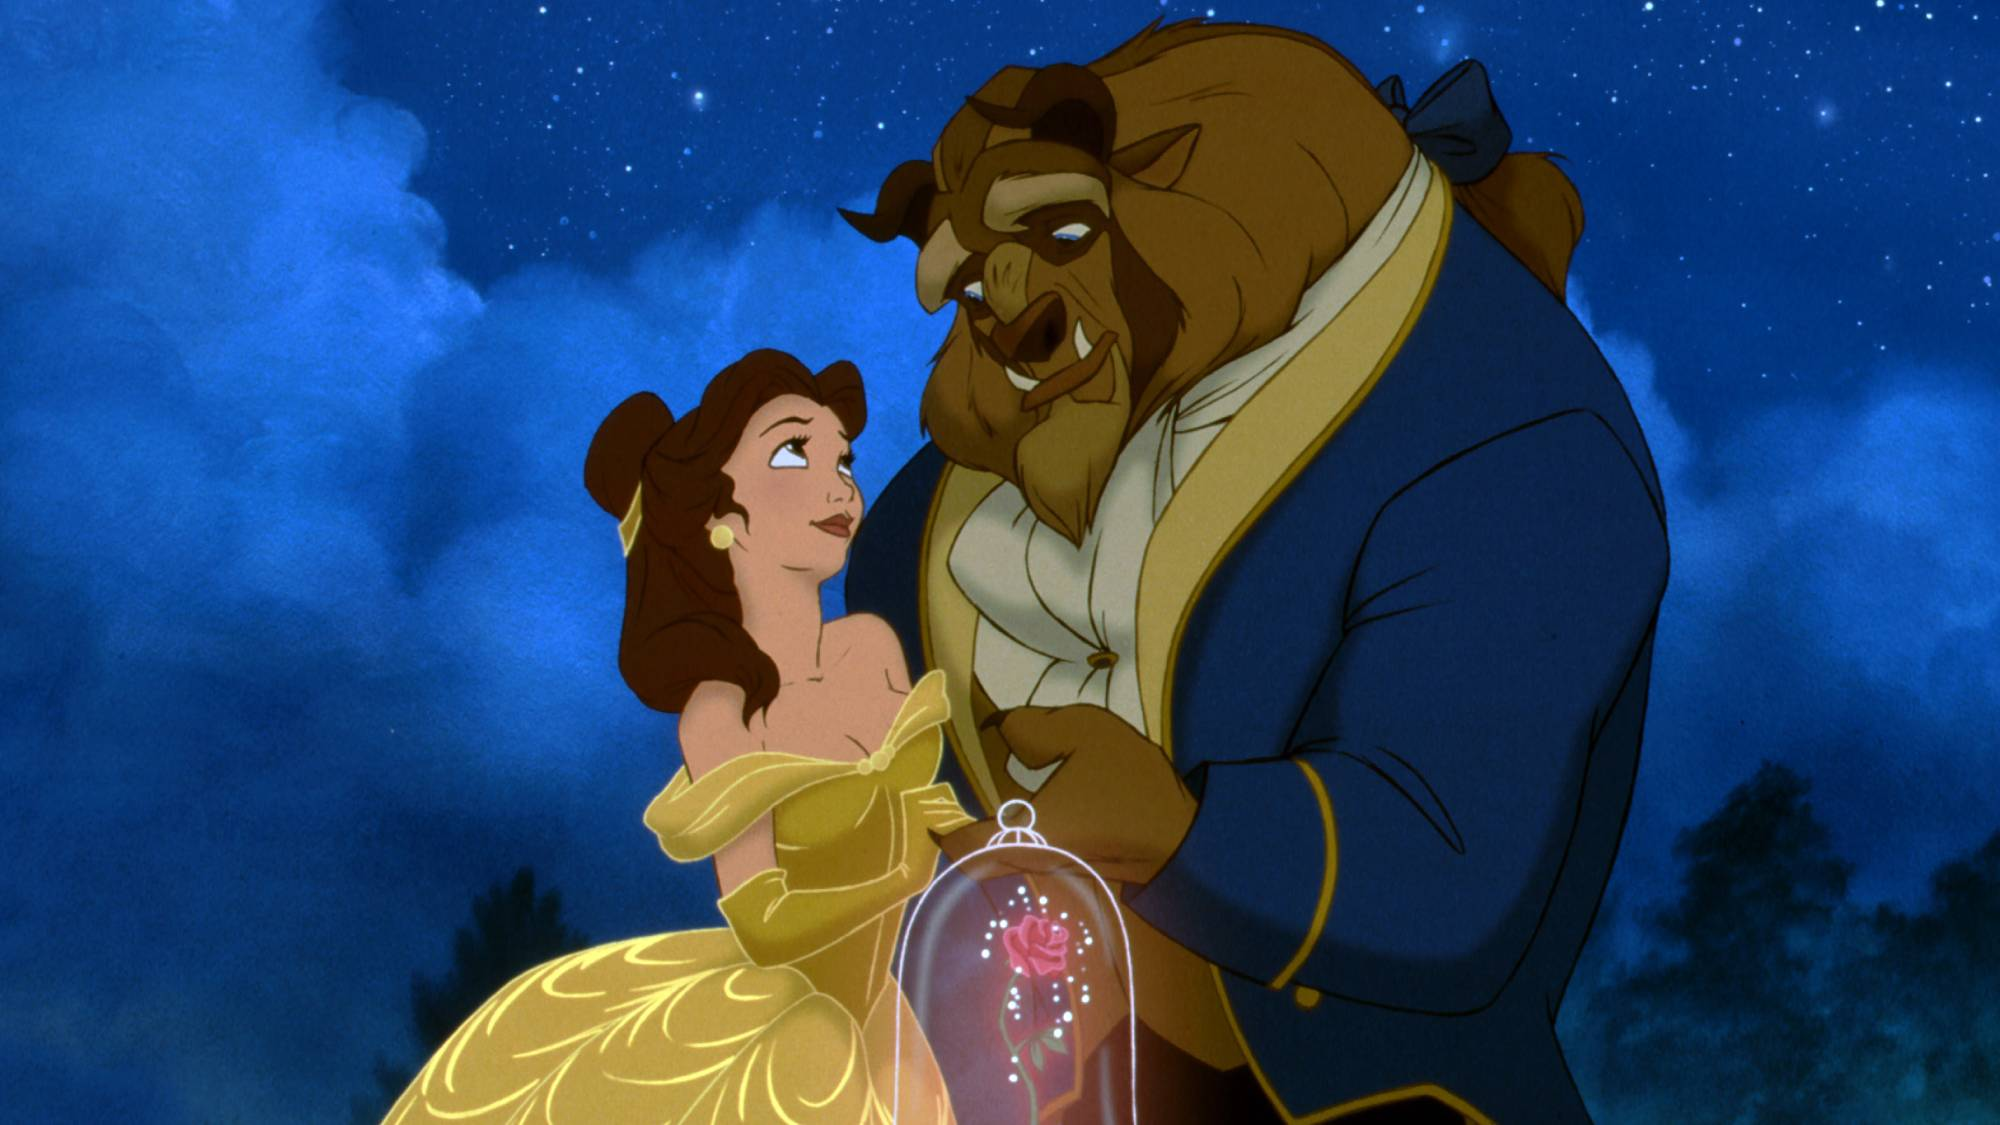 You can now get paid to watch Disney films every day (yes, really)